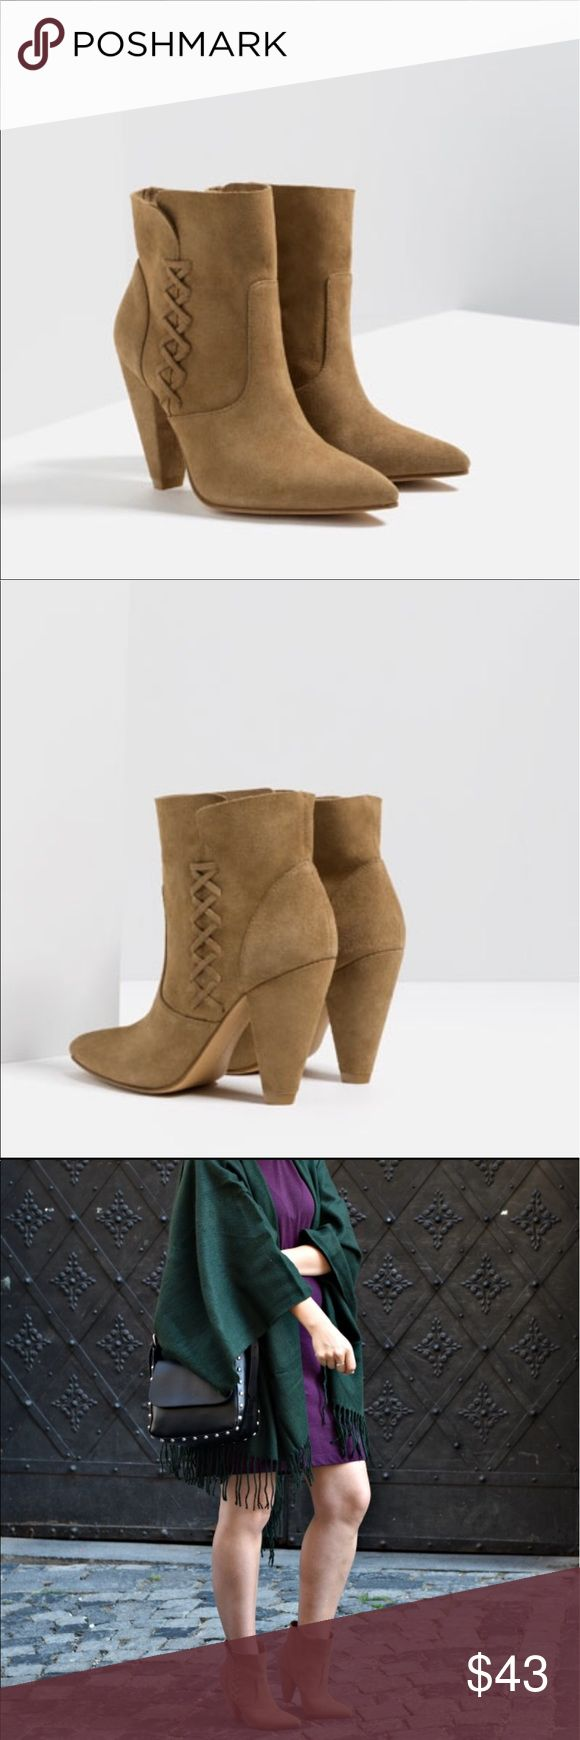 NEW ZARA SUEDE LEATHER ANKLE BOOTS HIGH HEEL 7.5 NEW ZARA Women's SUEDE LEATHER ANKLE BOOTS CONE HIGH HEEL SLIP ON POINTED sz 7.5 38 US SIZE 7.5 